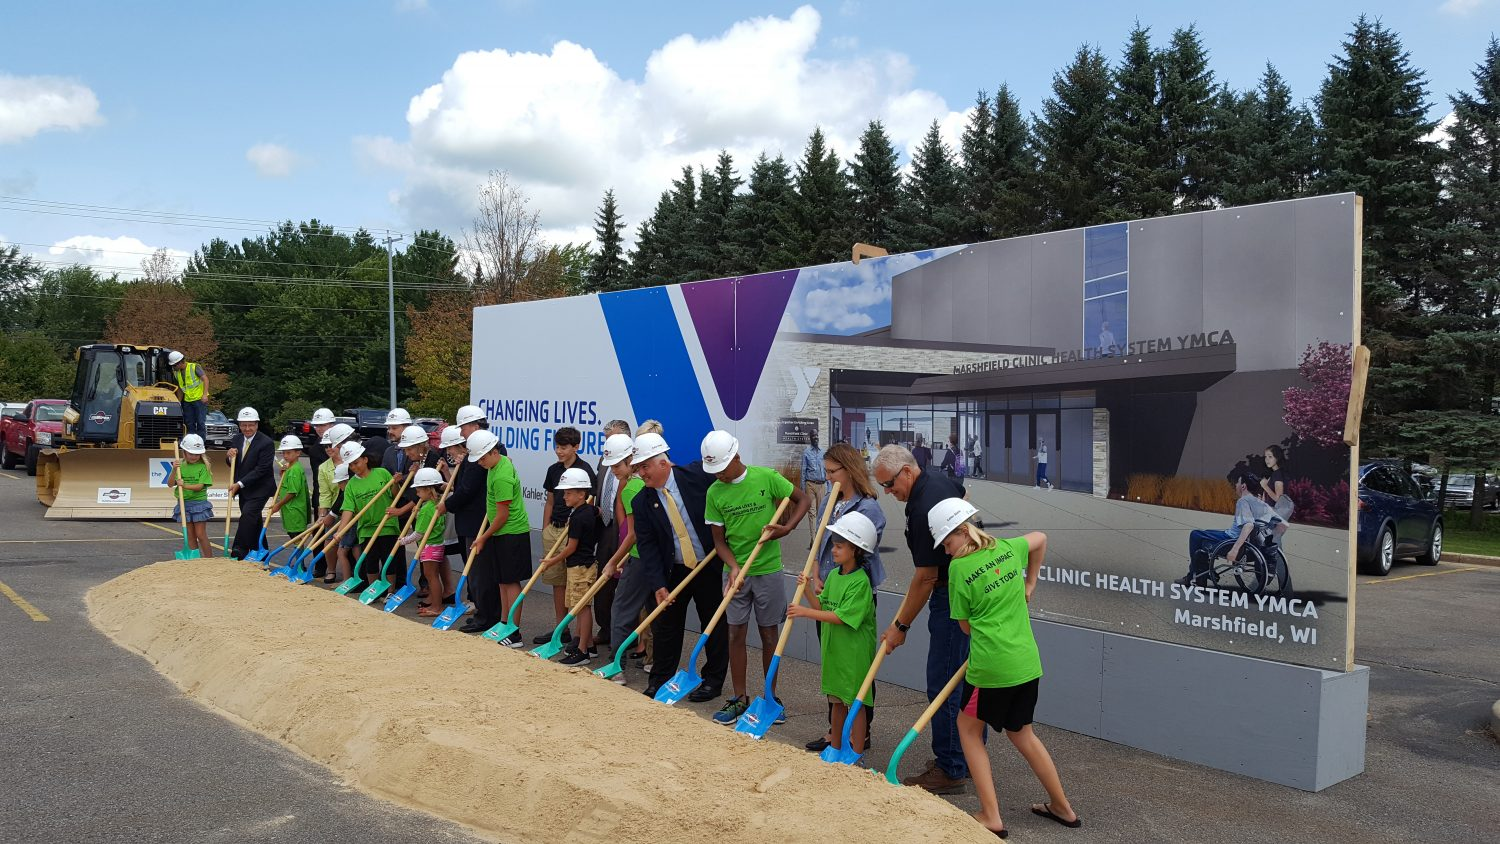 An official groundbreaking was held Aug. 23 to mark the beginning of a nearly $16 million expansion and remodel project to the Marshfield Clinic Health System YMCA.